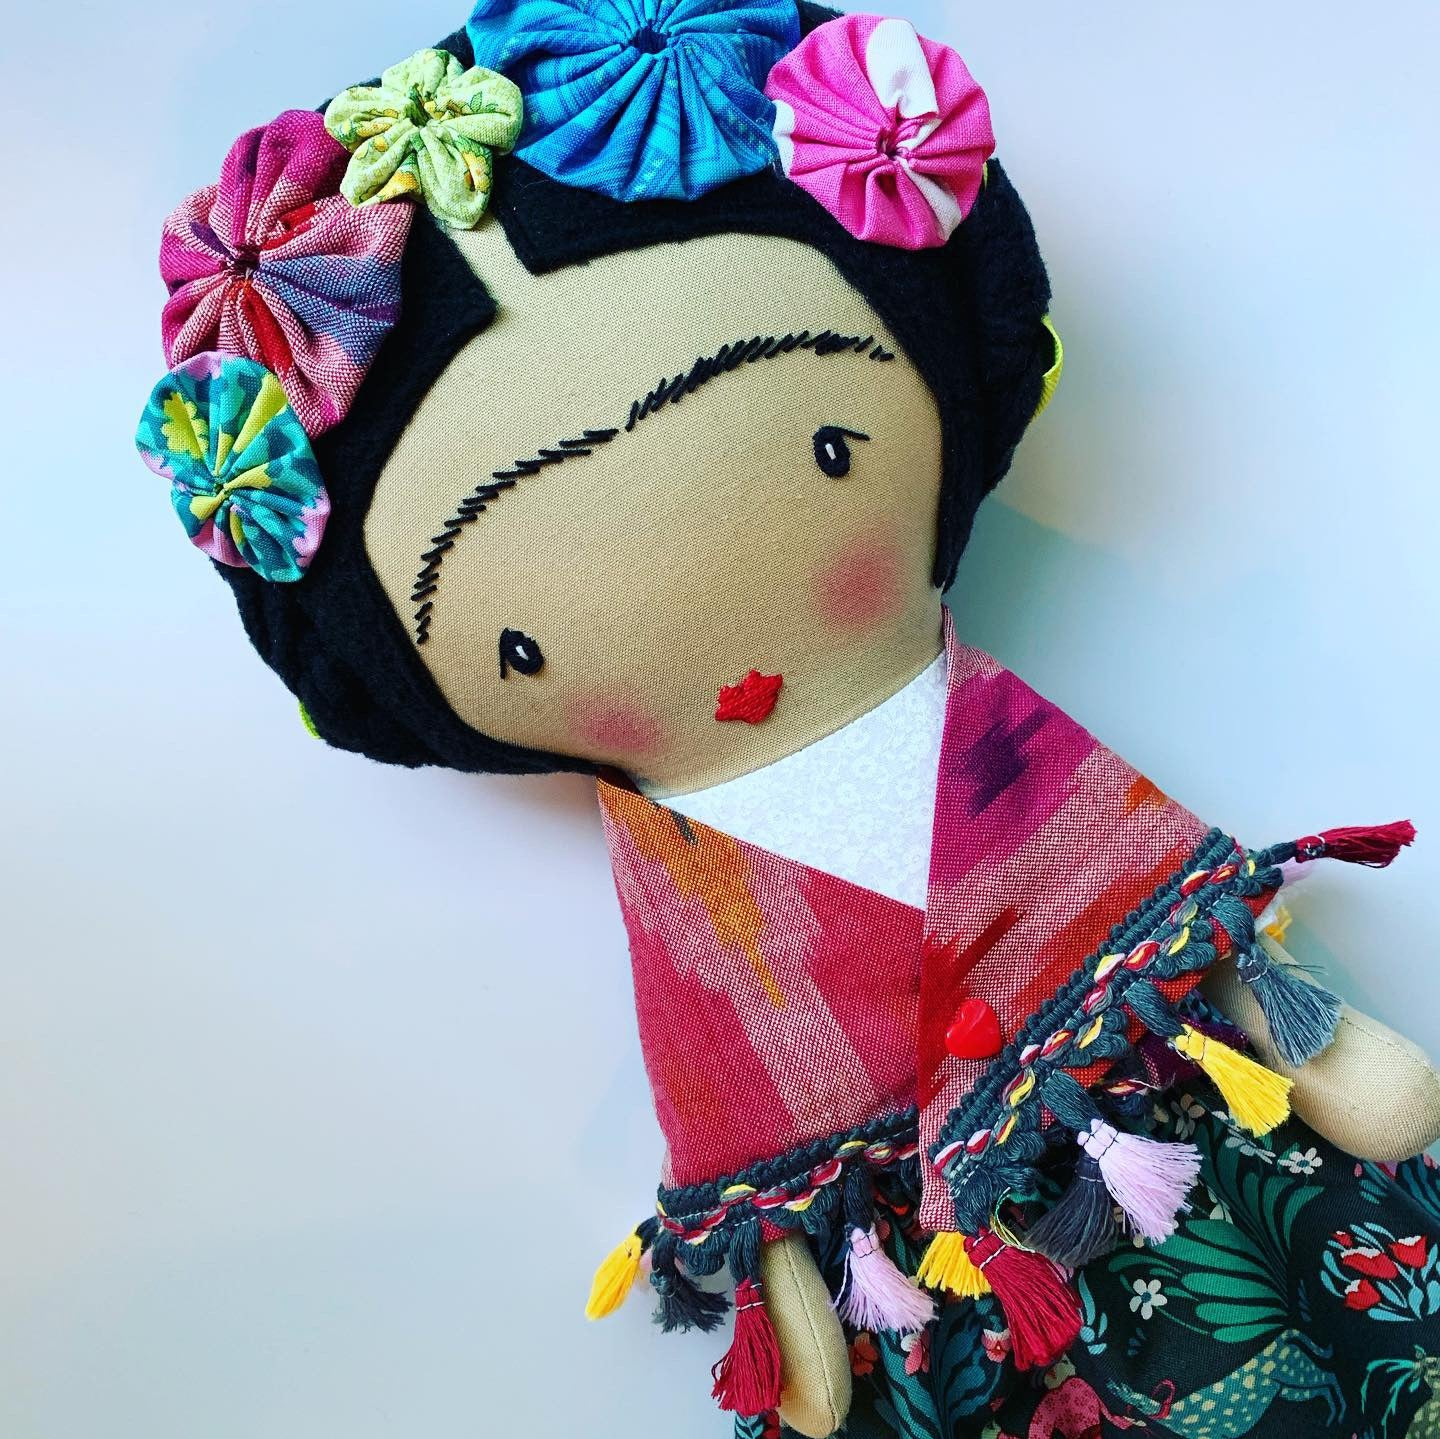 May*Lo Frida Inspired Doll